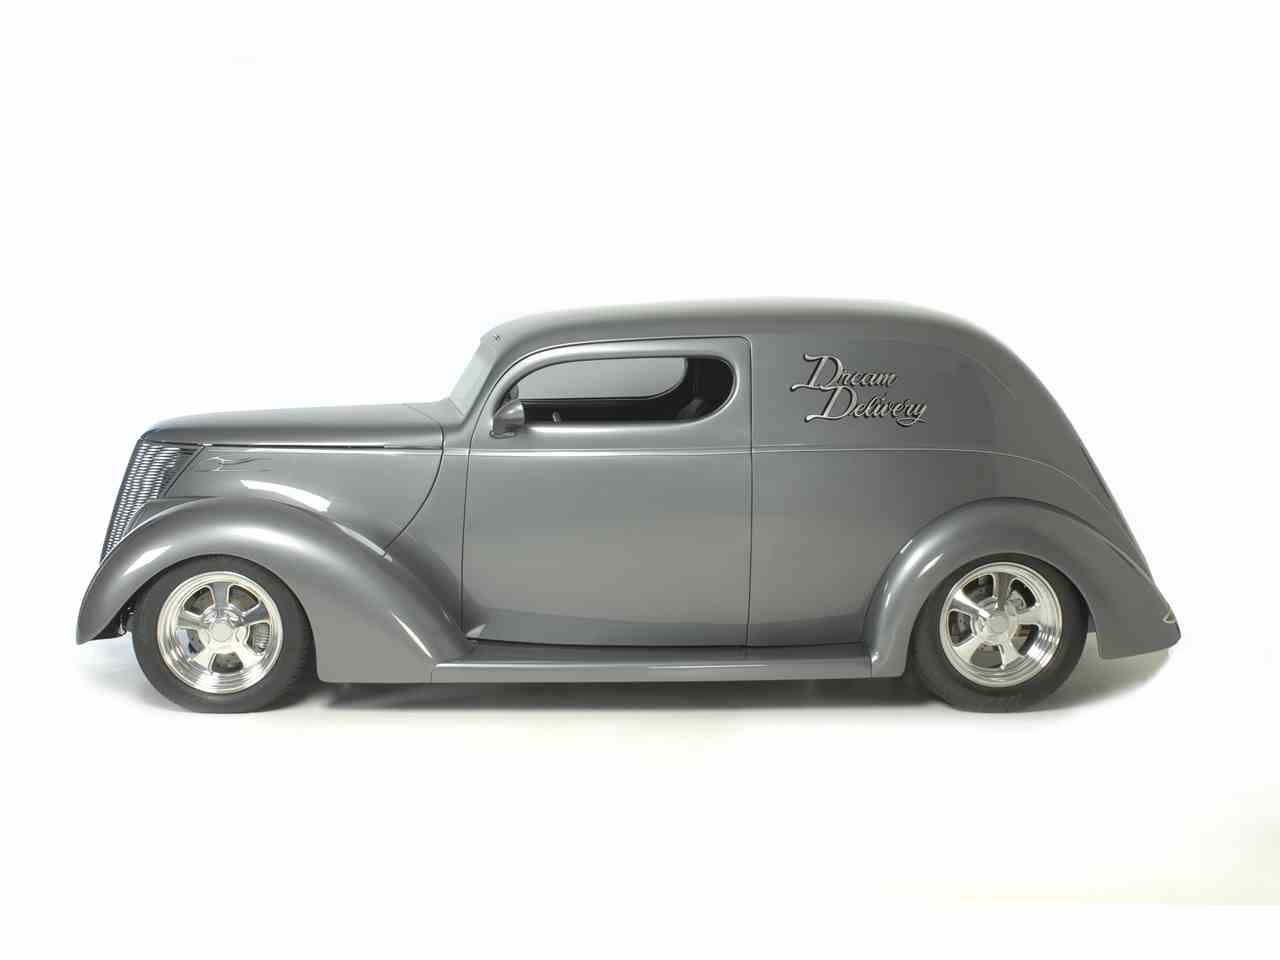 1937 Ford Custom Delivery Van for Sale | ClassicCars.com | CC-967023